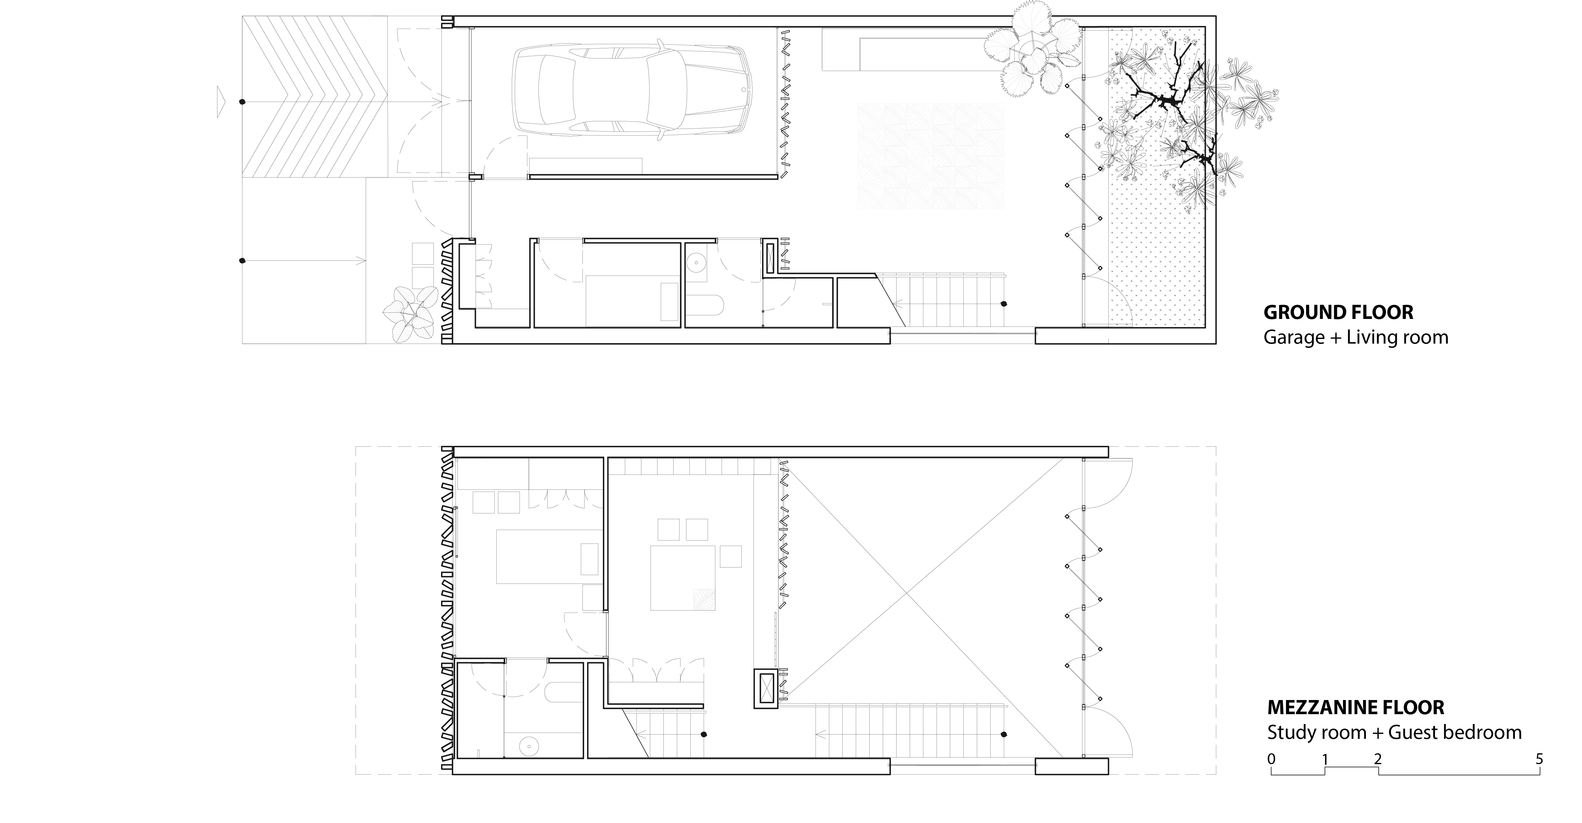 Wonderful Cool Gallery Of Thong House With Mezzanine Floor Plan House.